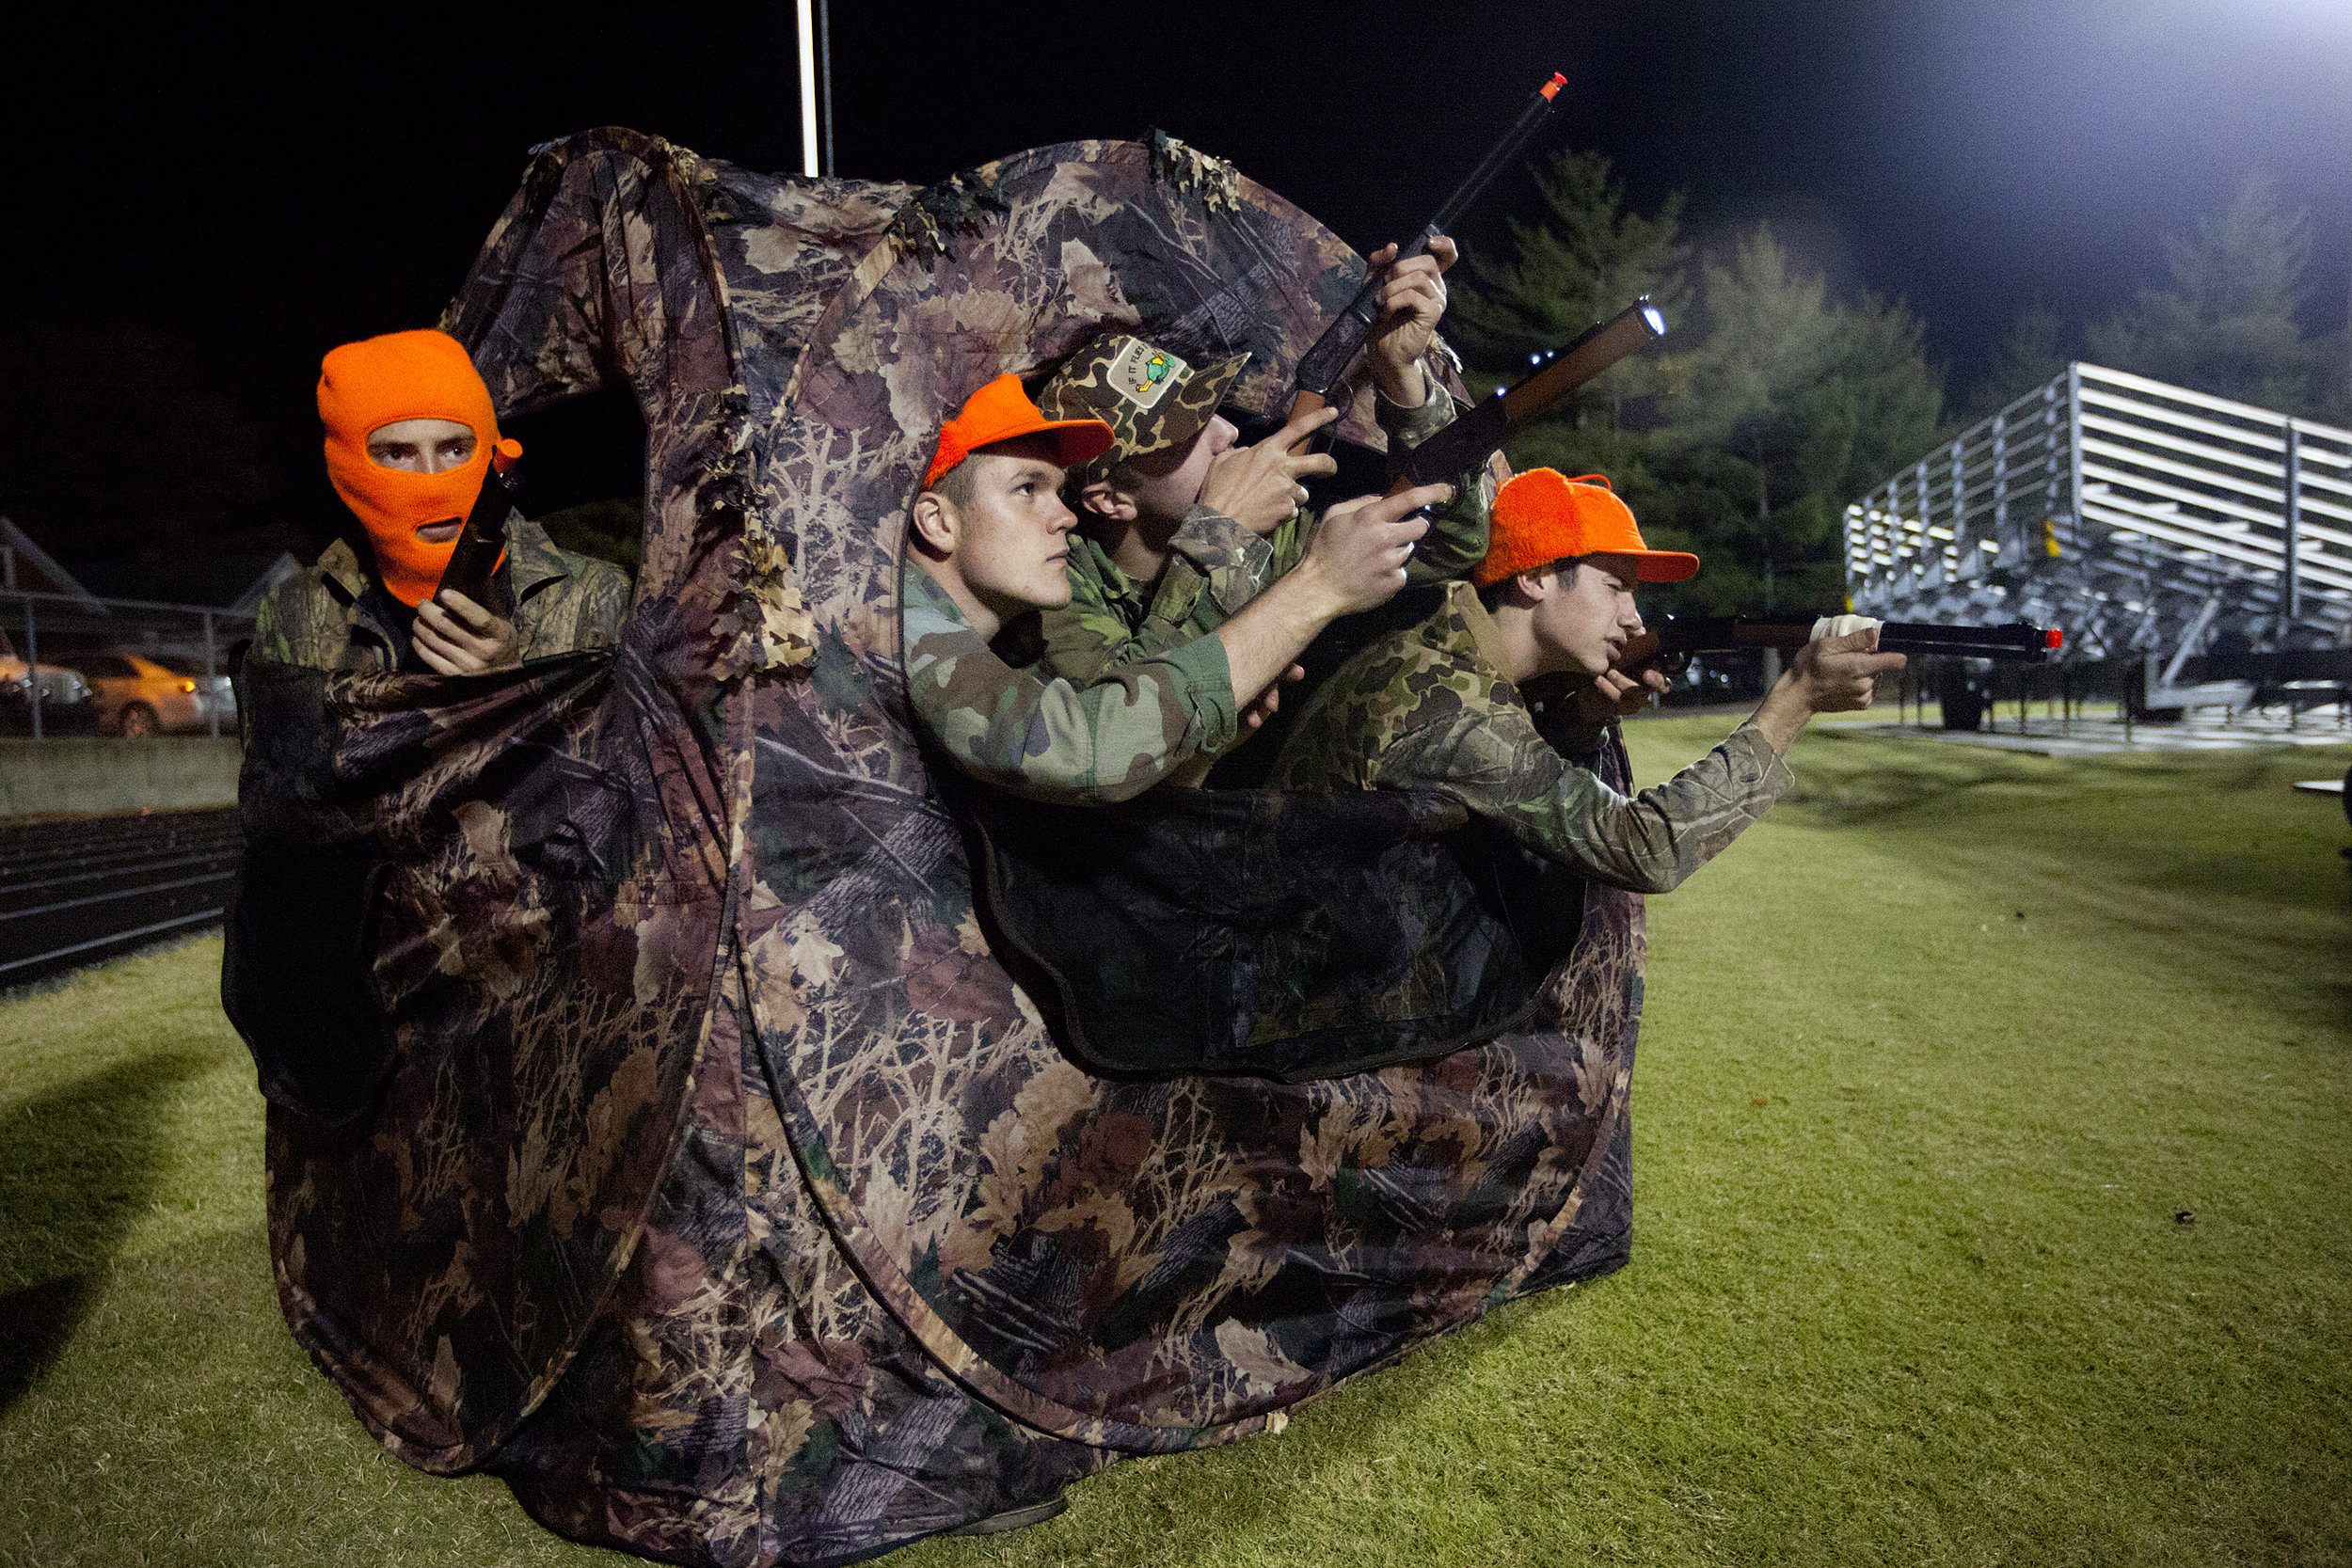 Jasper seniors Kirk Stenftenagel, left, Issac Lechner, Mark Giesler and Nate Messier spent halftime of the Class 4A sectional championship game against Evansville Reitz in a hunting blind at Jerry Brewer Alumni Stadium in Jasper. The Wildcats lost 31-30.